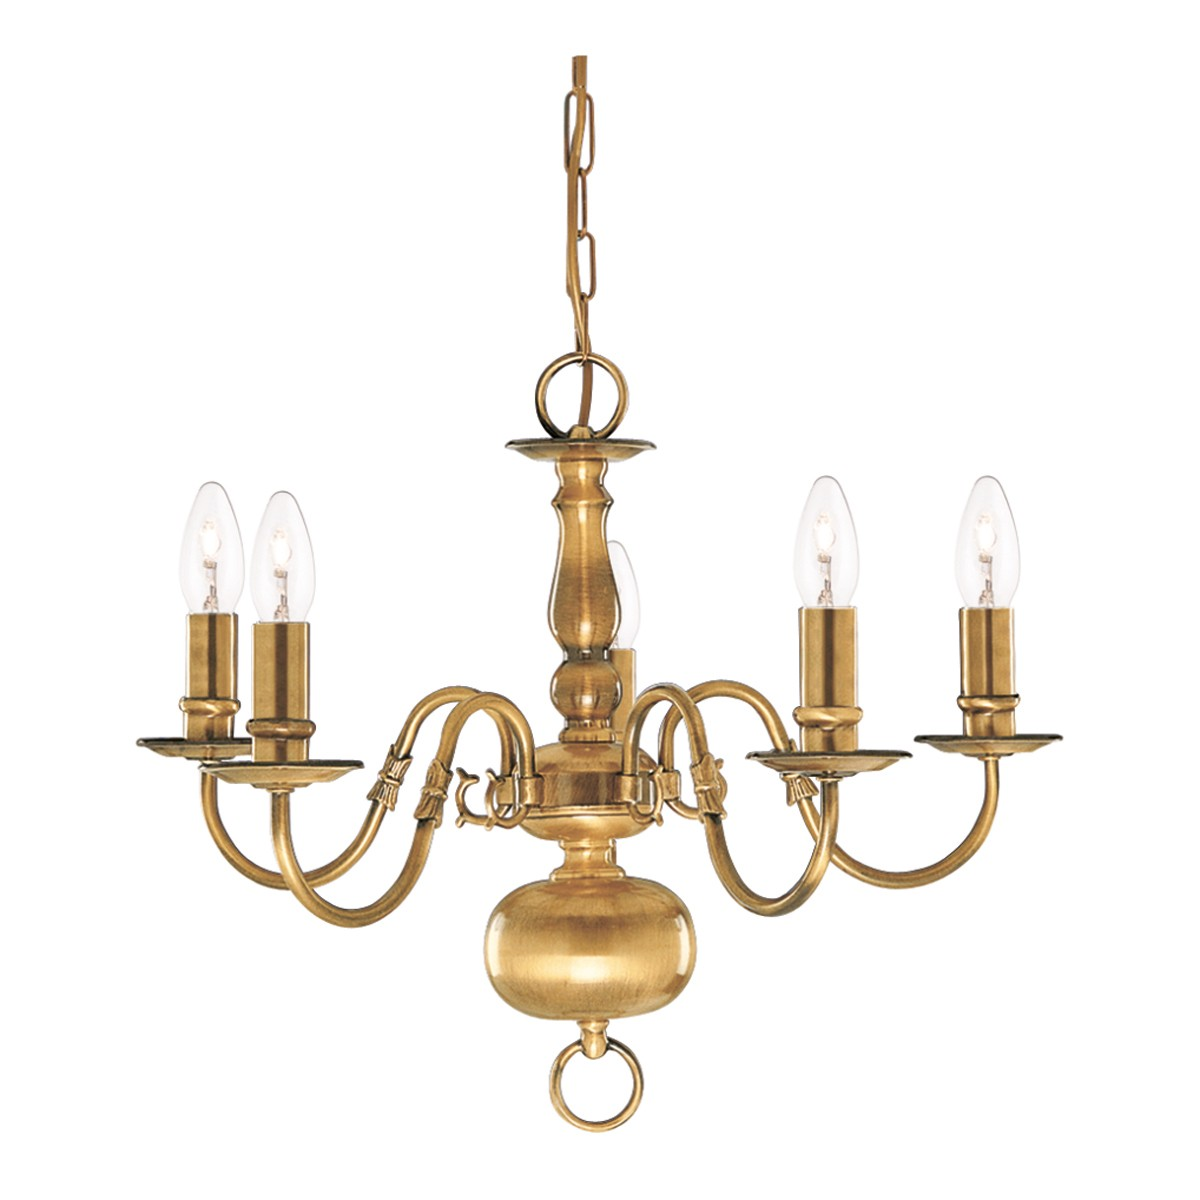 Flemish solid antique brass 5 light chandelier with metal candle flemish solid antique brass 5 light chandelier with metal candle covers 1019 5ab stanways stoves and lights arubaitofo Gallery